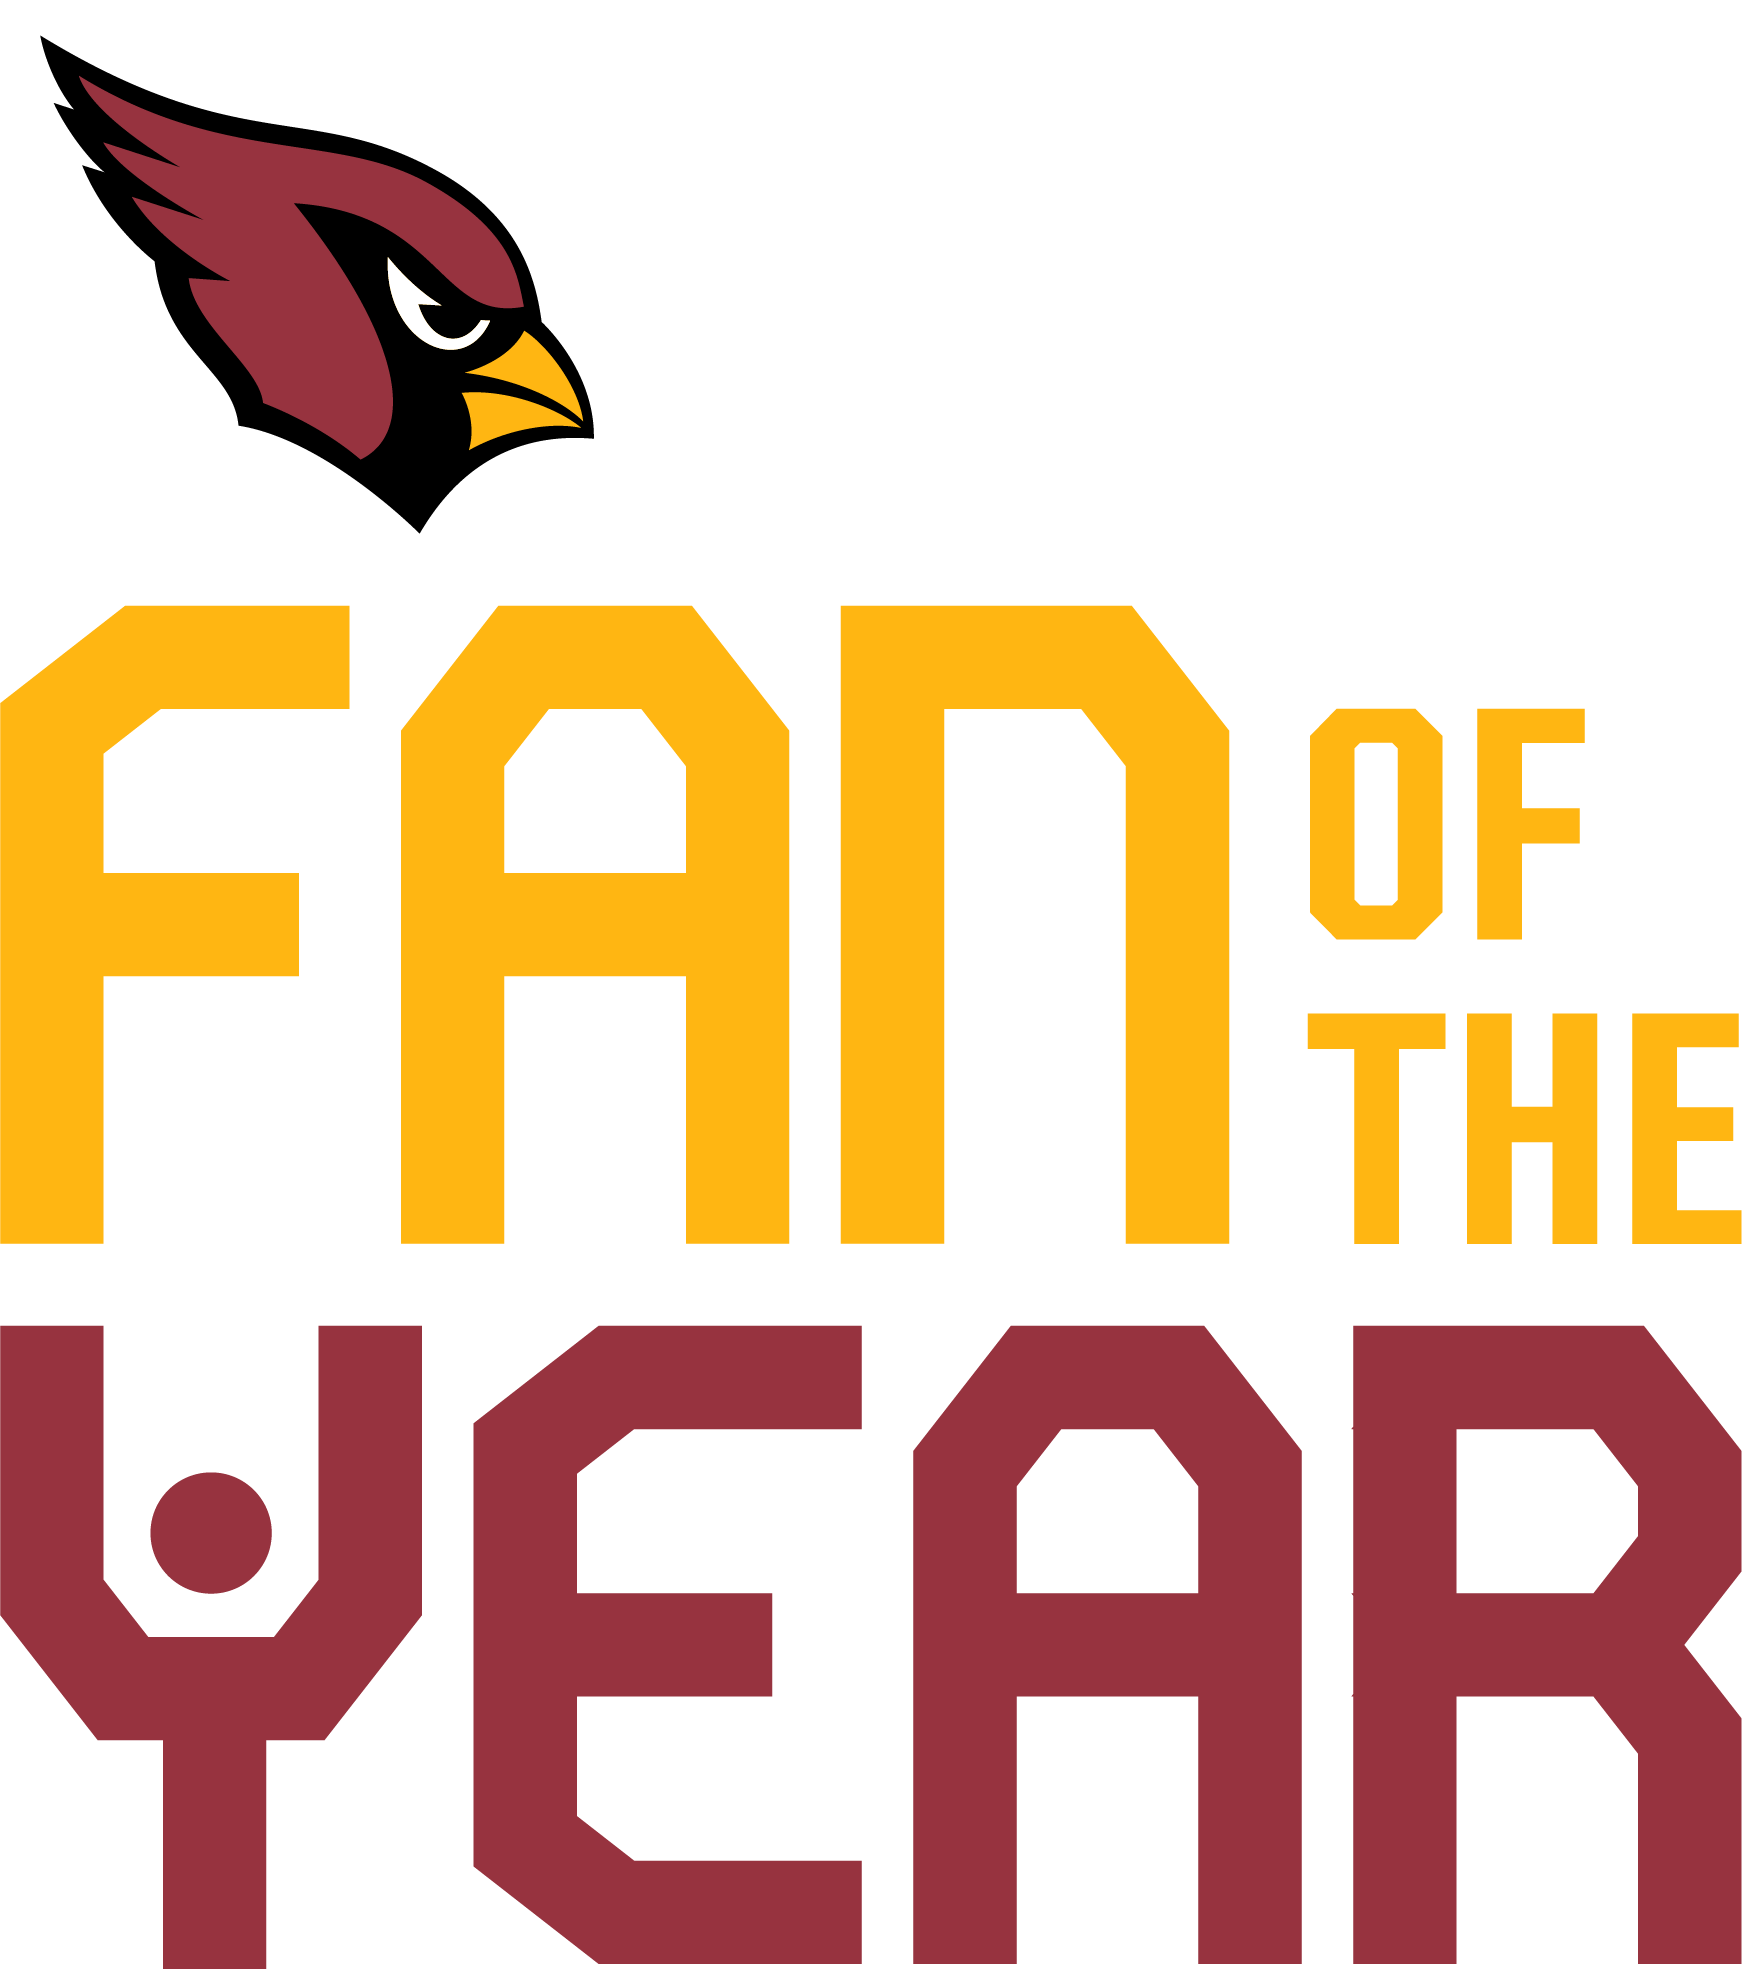 Arizona Cardinals 2020 Fan of The Year Color Logo